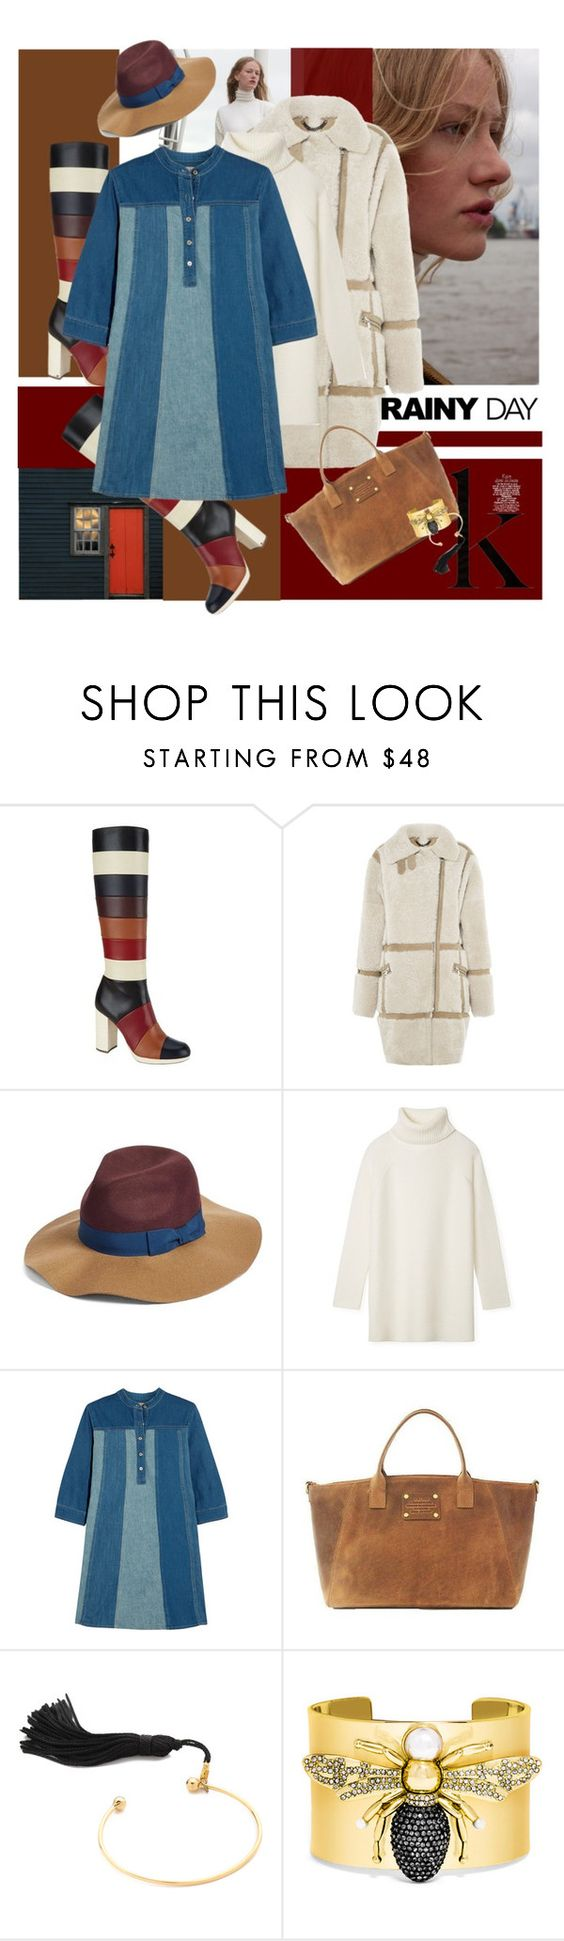 """""""Denim, Wool and Shearling"""" by laste-co ❤ liked on Polyvore featuring Valentino, Whistles, BCBGeneration, Tory Burch, MiH Jeans, Vanessa Mooney and BaubleBar"""